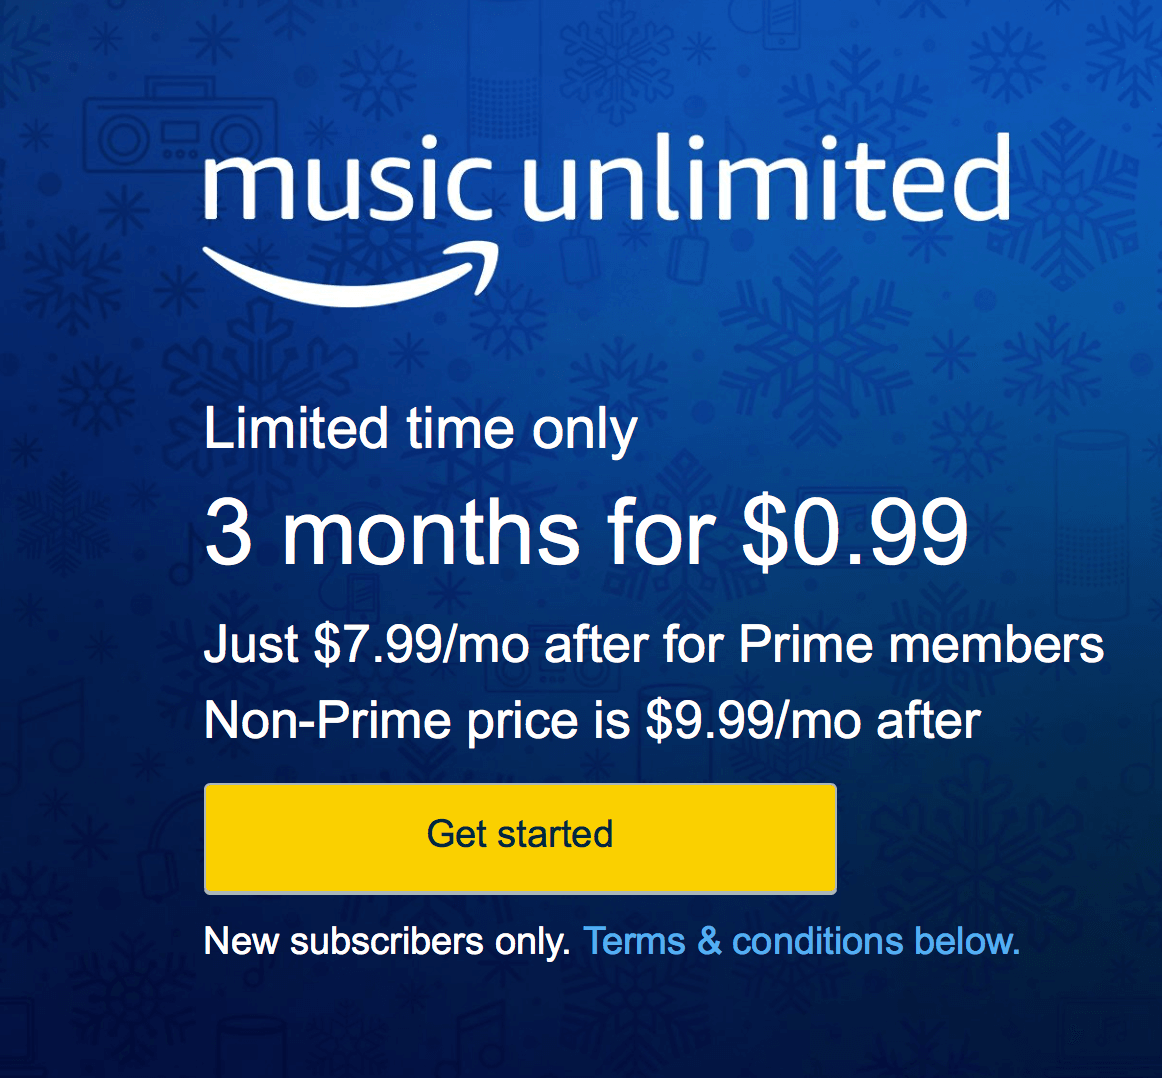 amazon-music-free-99-offer.png